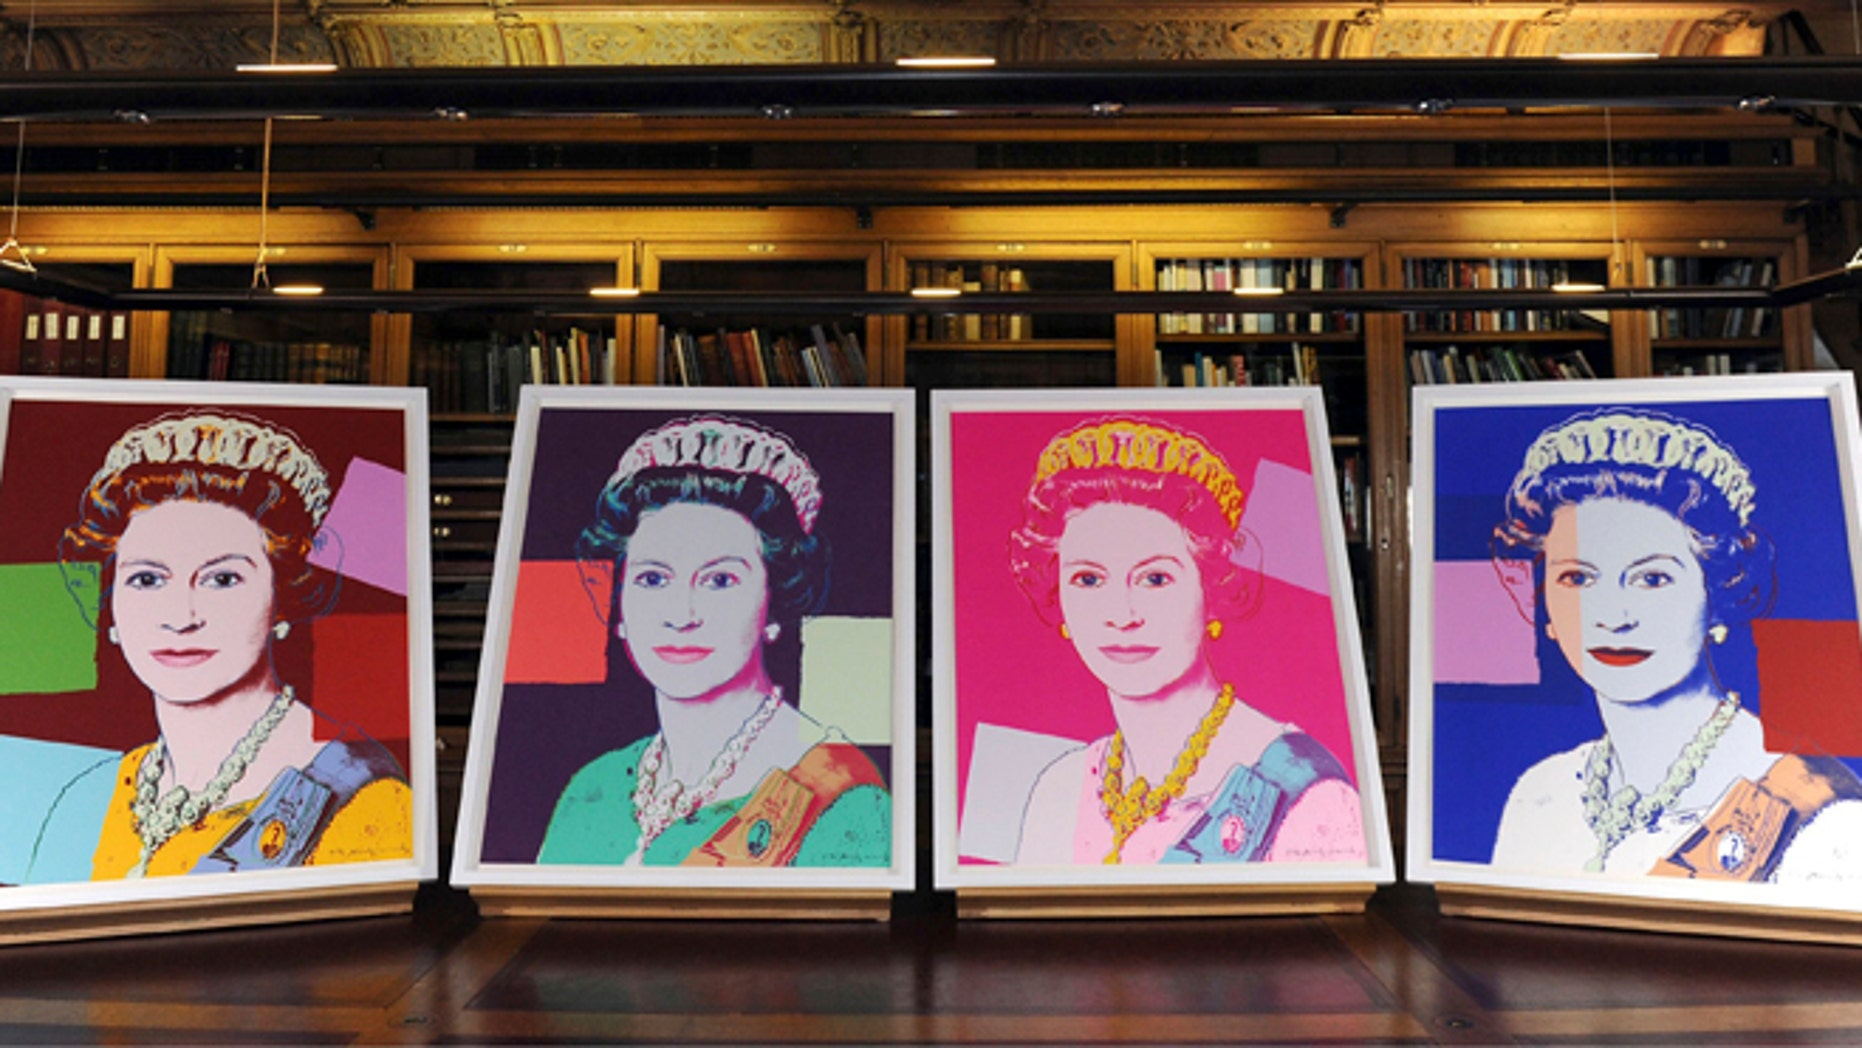 """Sept. 24, 2012: Four Andy Warhol portraits of Queen Elizabeth II are seen in Windsor Castle, Windsor, England, and will form part of the """"Portraits of a Monarch"""" exhibit starting in November at Windsor Castle until June 2013."""